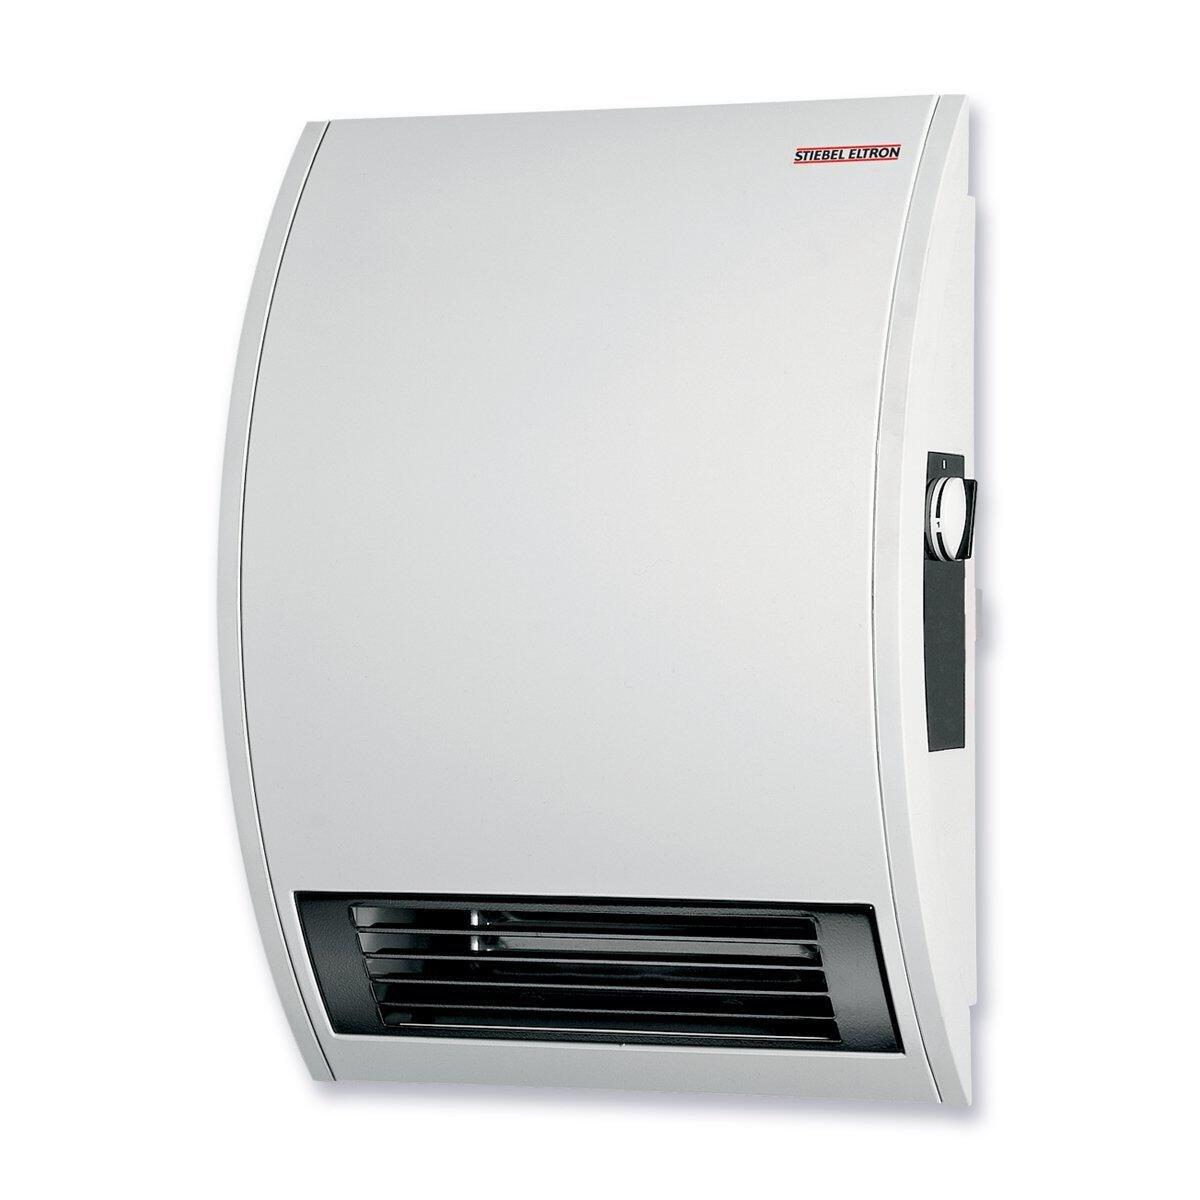 Stiebel Eltron CK 15E 120 Volt, 1500 Watts Wall Mounted Electric Fan Heater